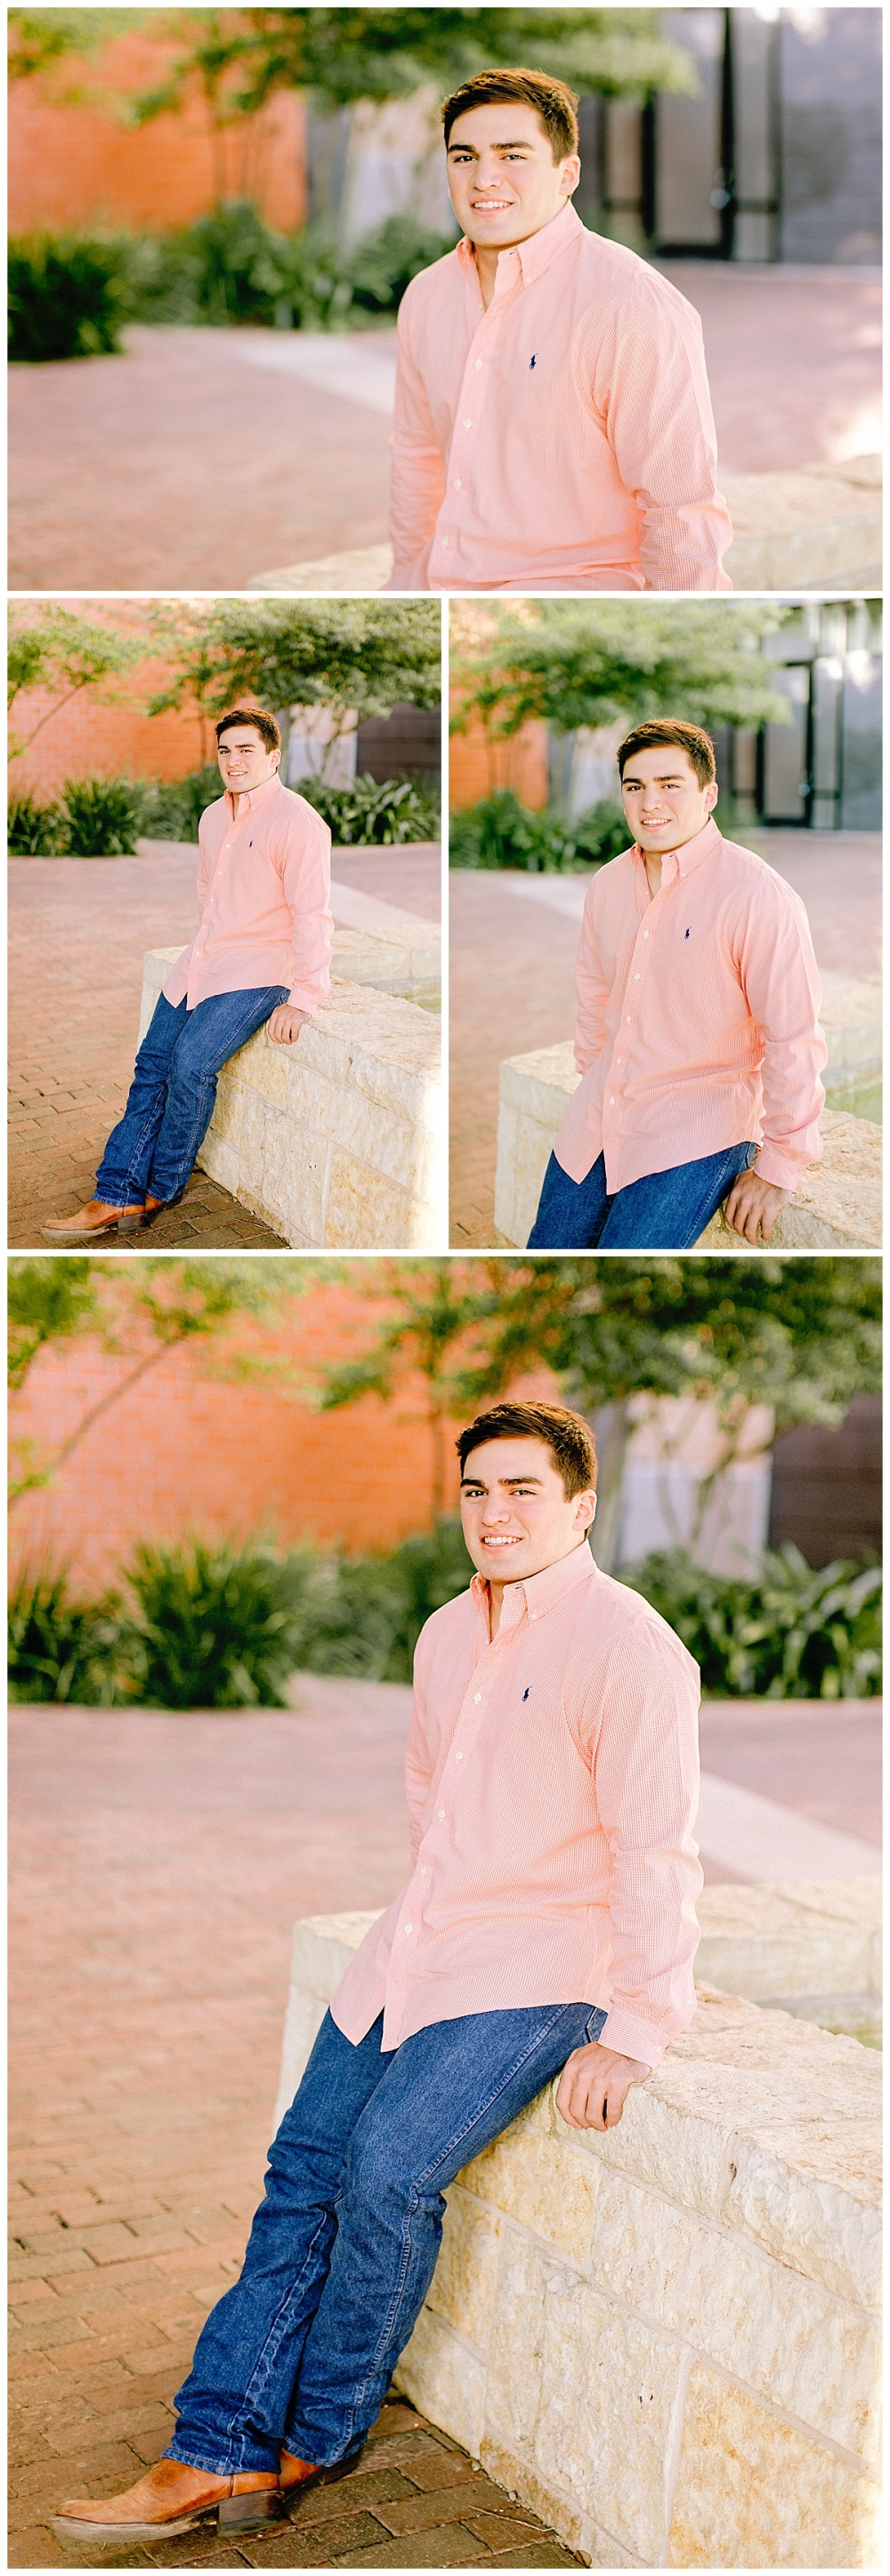 Carly-Barton-Photography-Senior-Session-The-Historic-Pearl-San-Antonio-Texas-Elizondo-Clark-High-School_0159.jpg